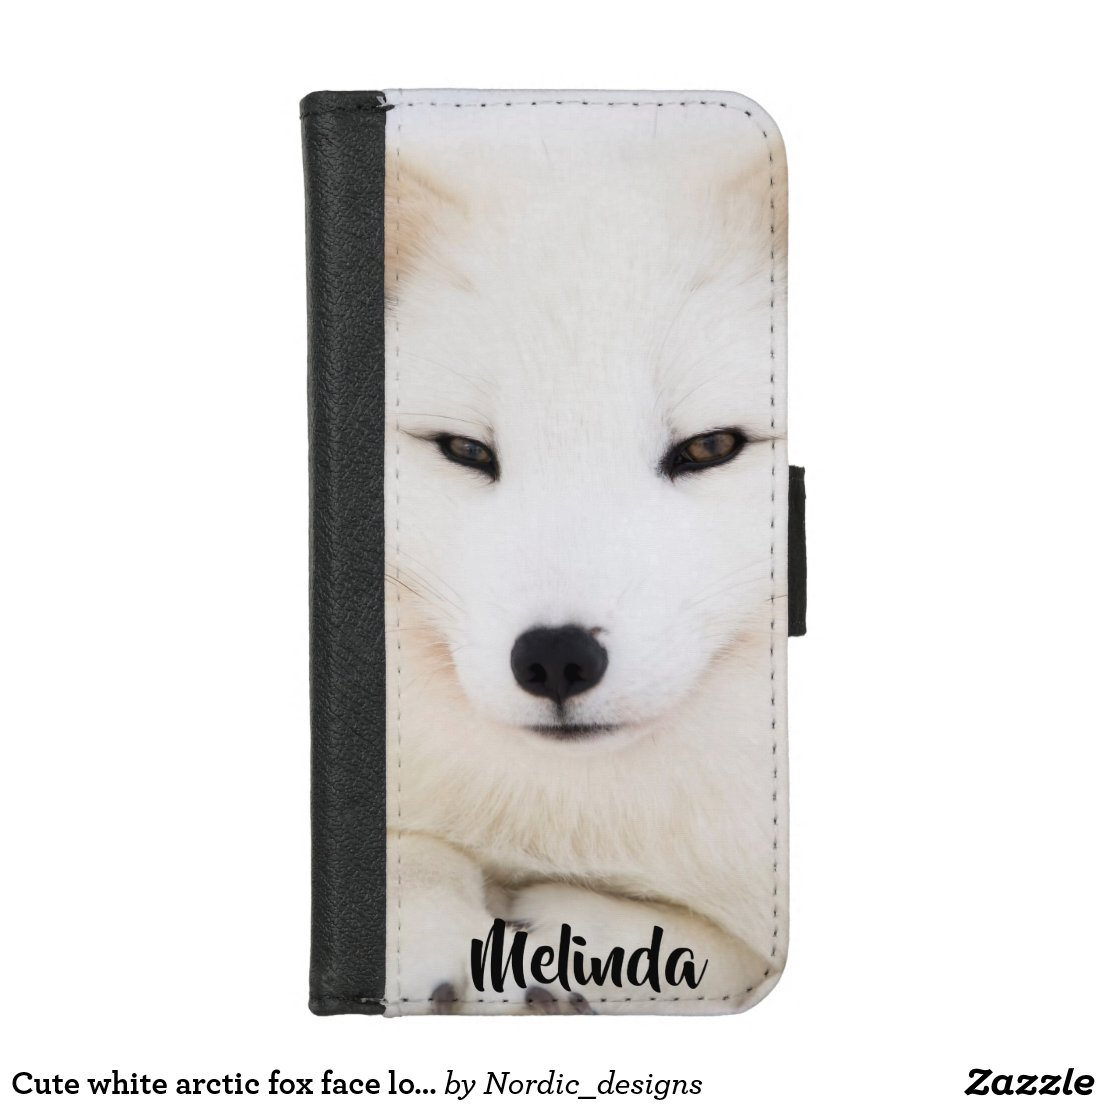 Cute white arctic fox face looking at you iPhone 8/7 wallet case